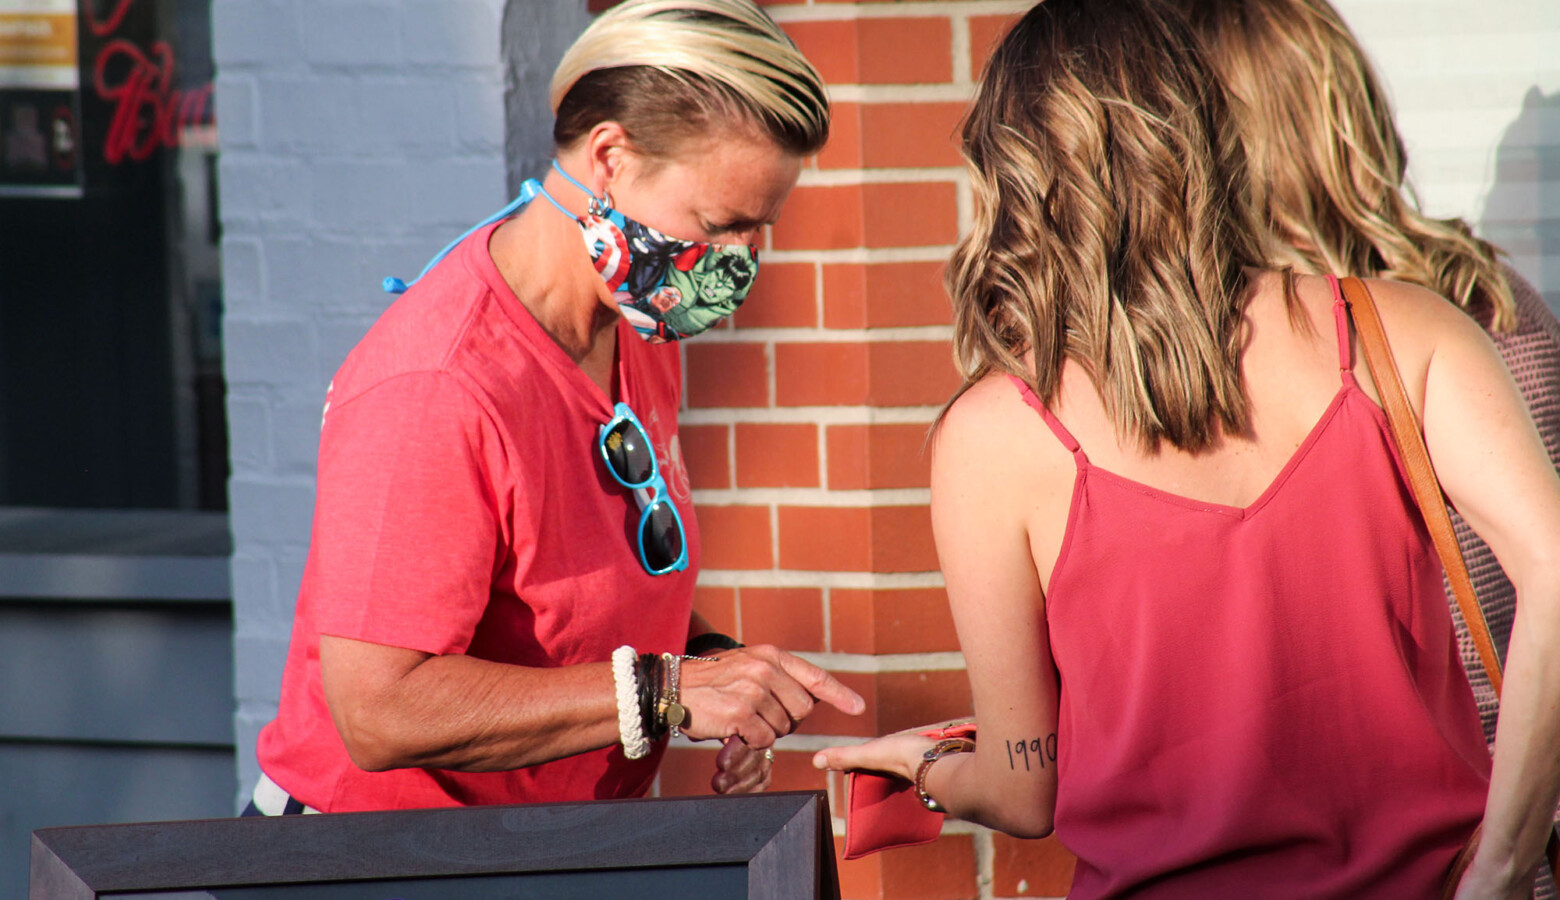 The state's PPE marketplace fulfilled more than 30,000 orders for personal protective equipment, at no cost, since its May launch. (Lauren Chapman/IPB News)